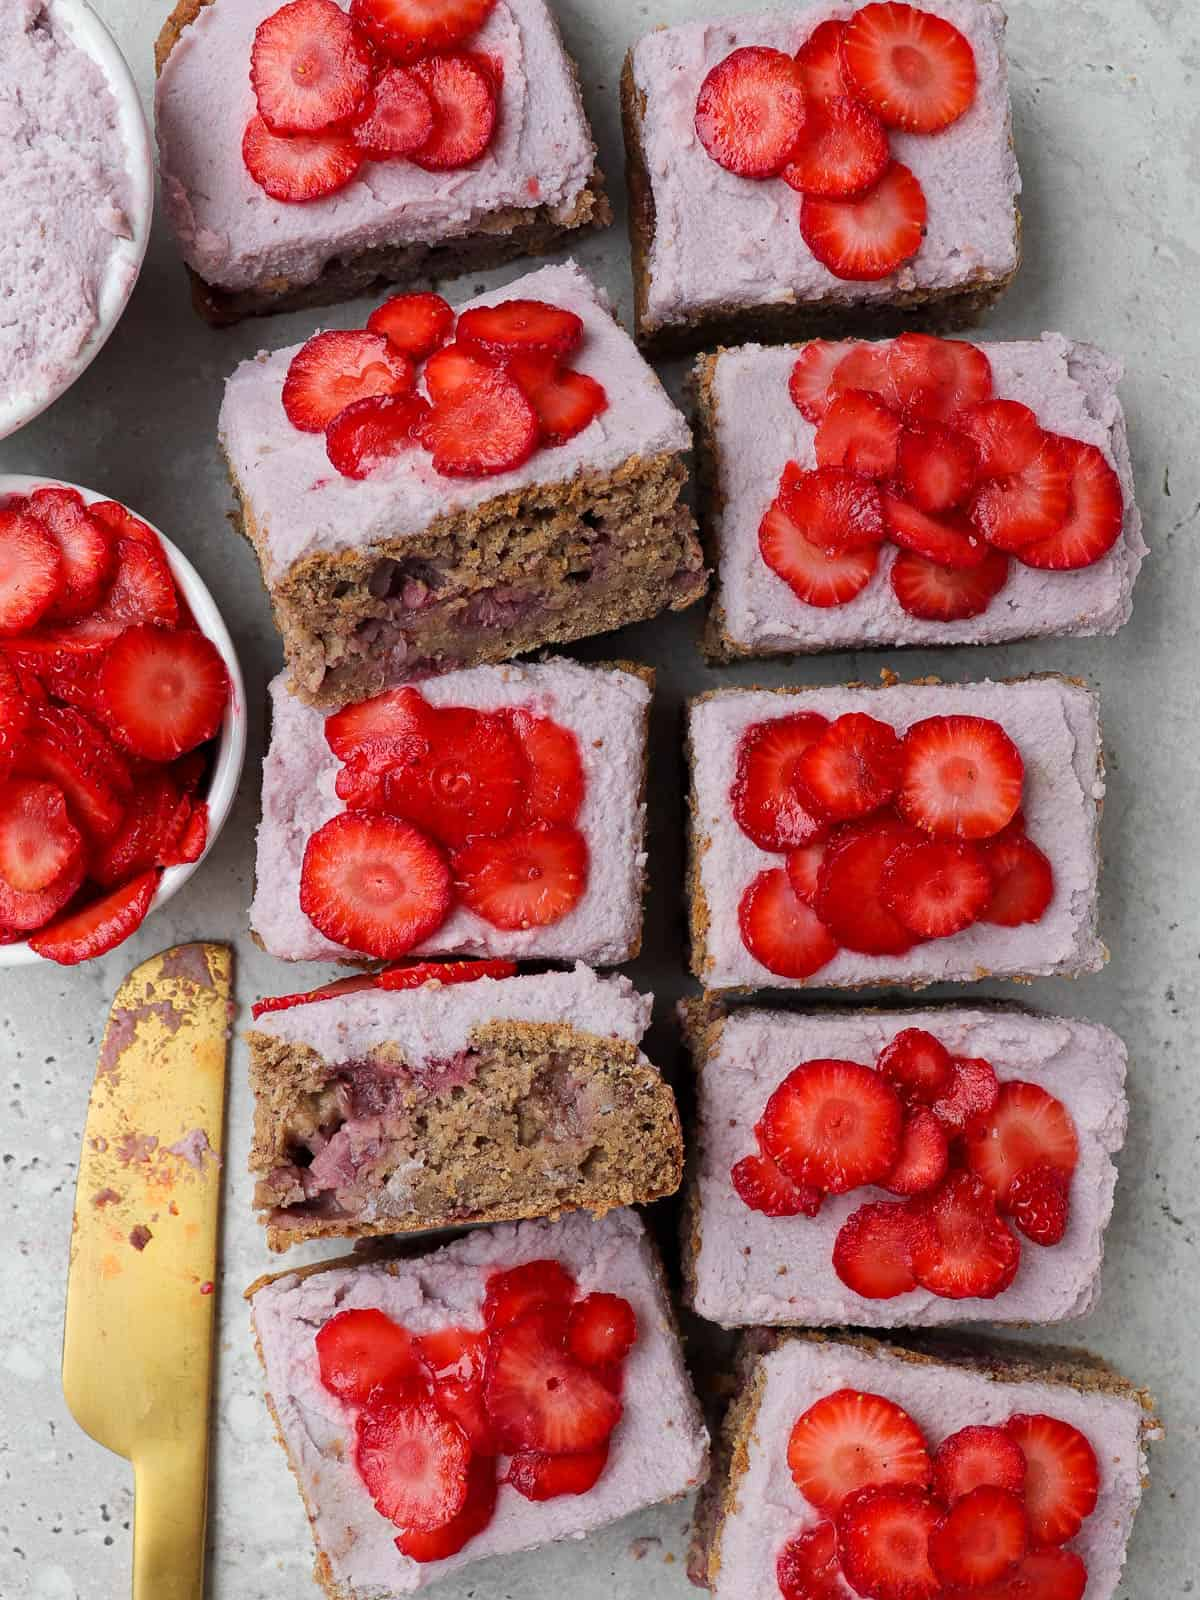 Frosted cake topped with sliced strawberries and cut up into small rectangle slices. two slices tilted on the side or an inside view.